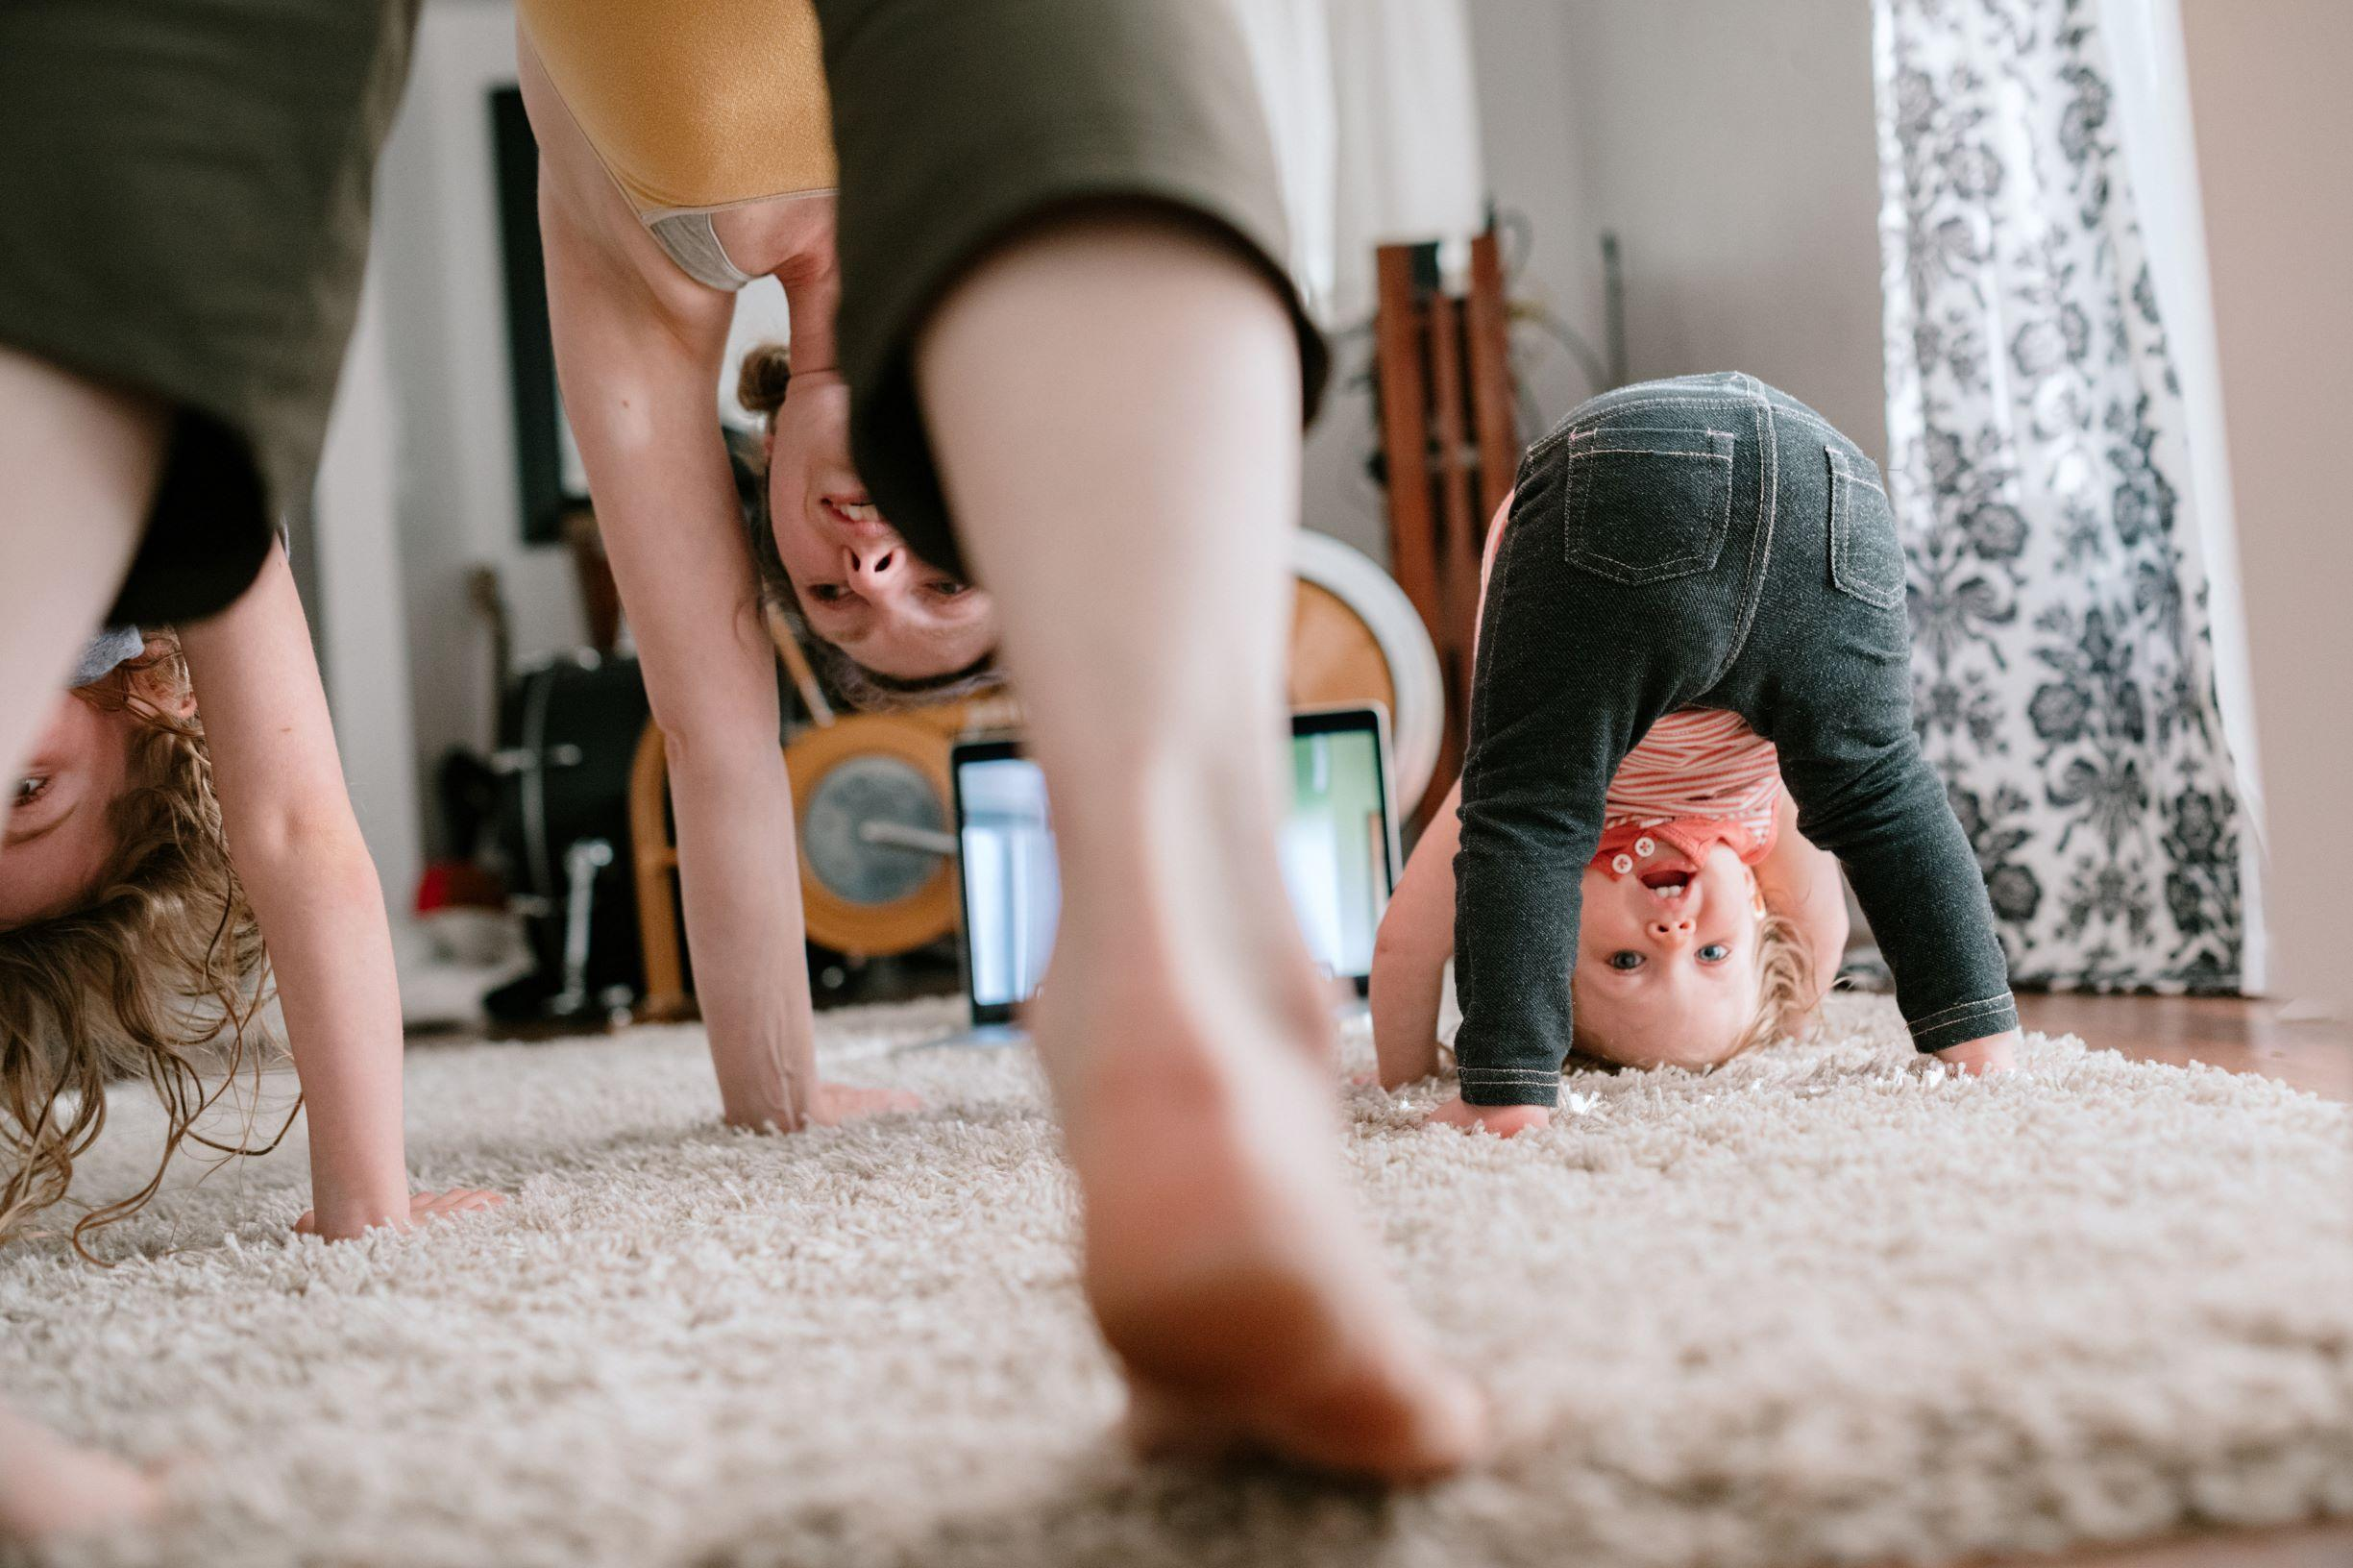 Working out at home Thumbnail